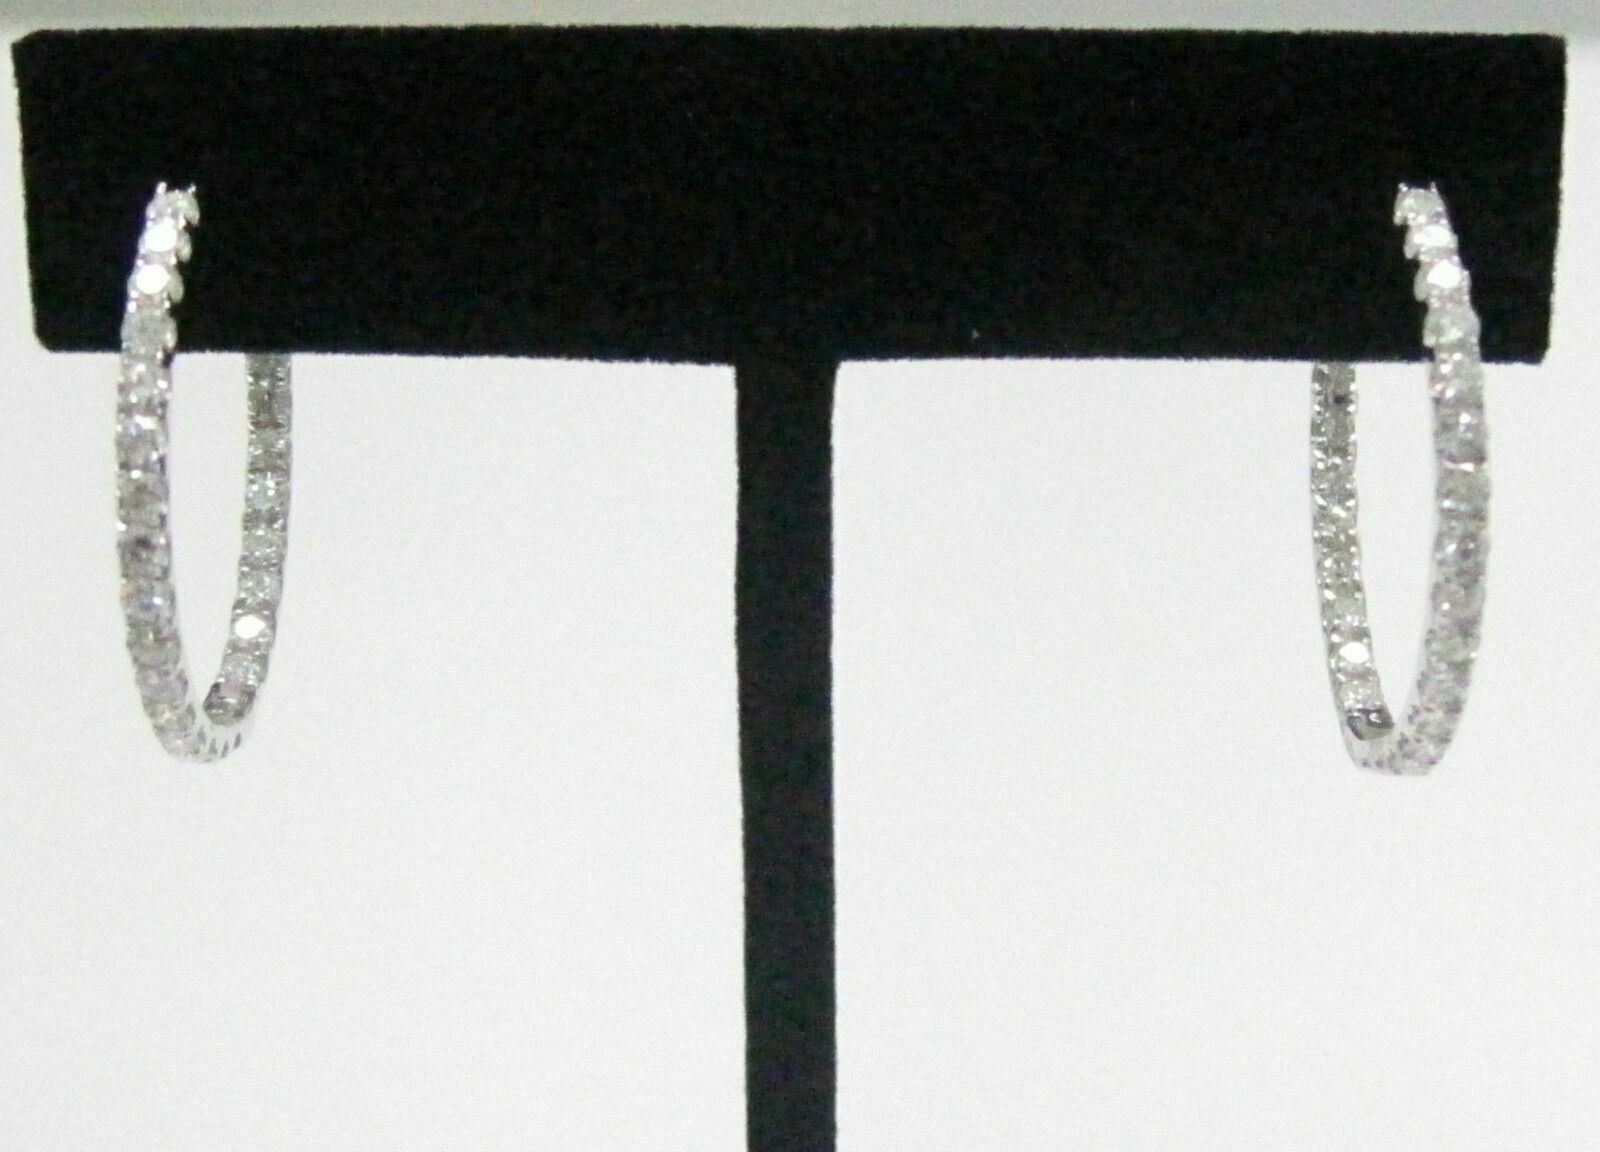 26mm 2.50 TCW Round Hoops In & Out Diamond Earrings F-G VS-2 18kt White Gold